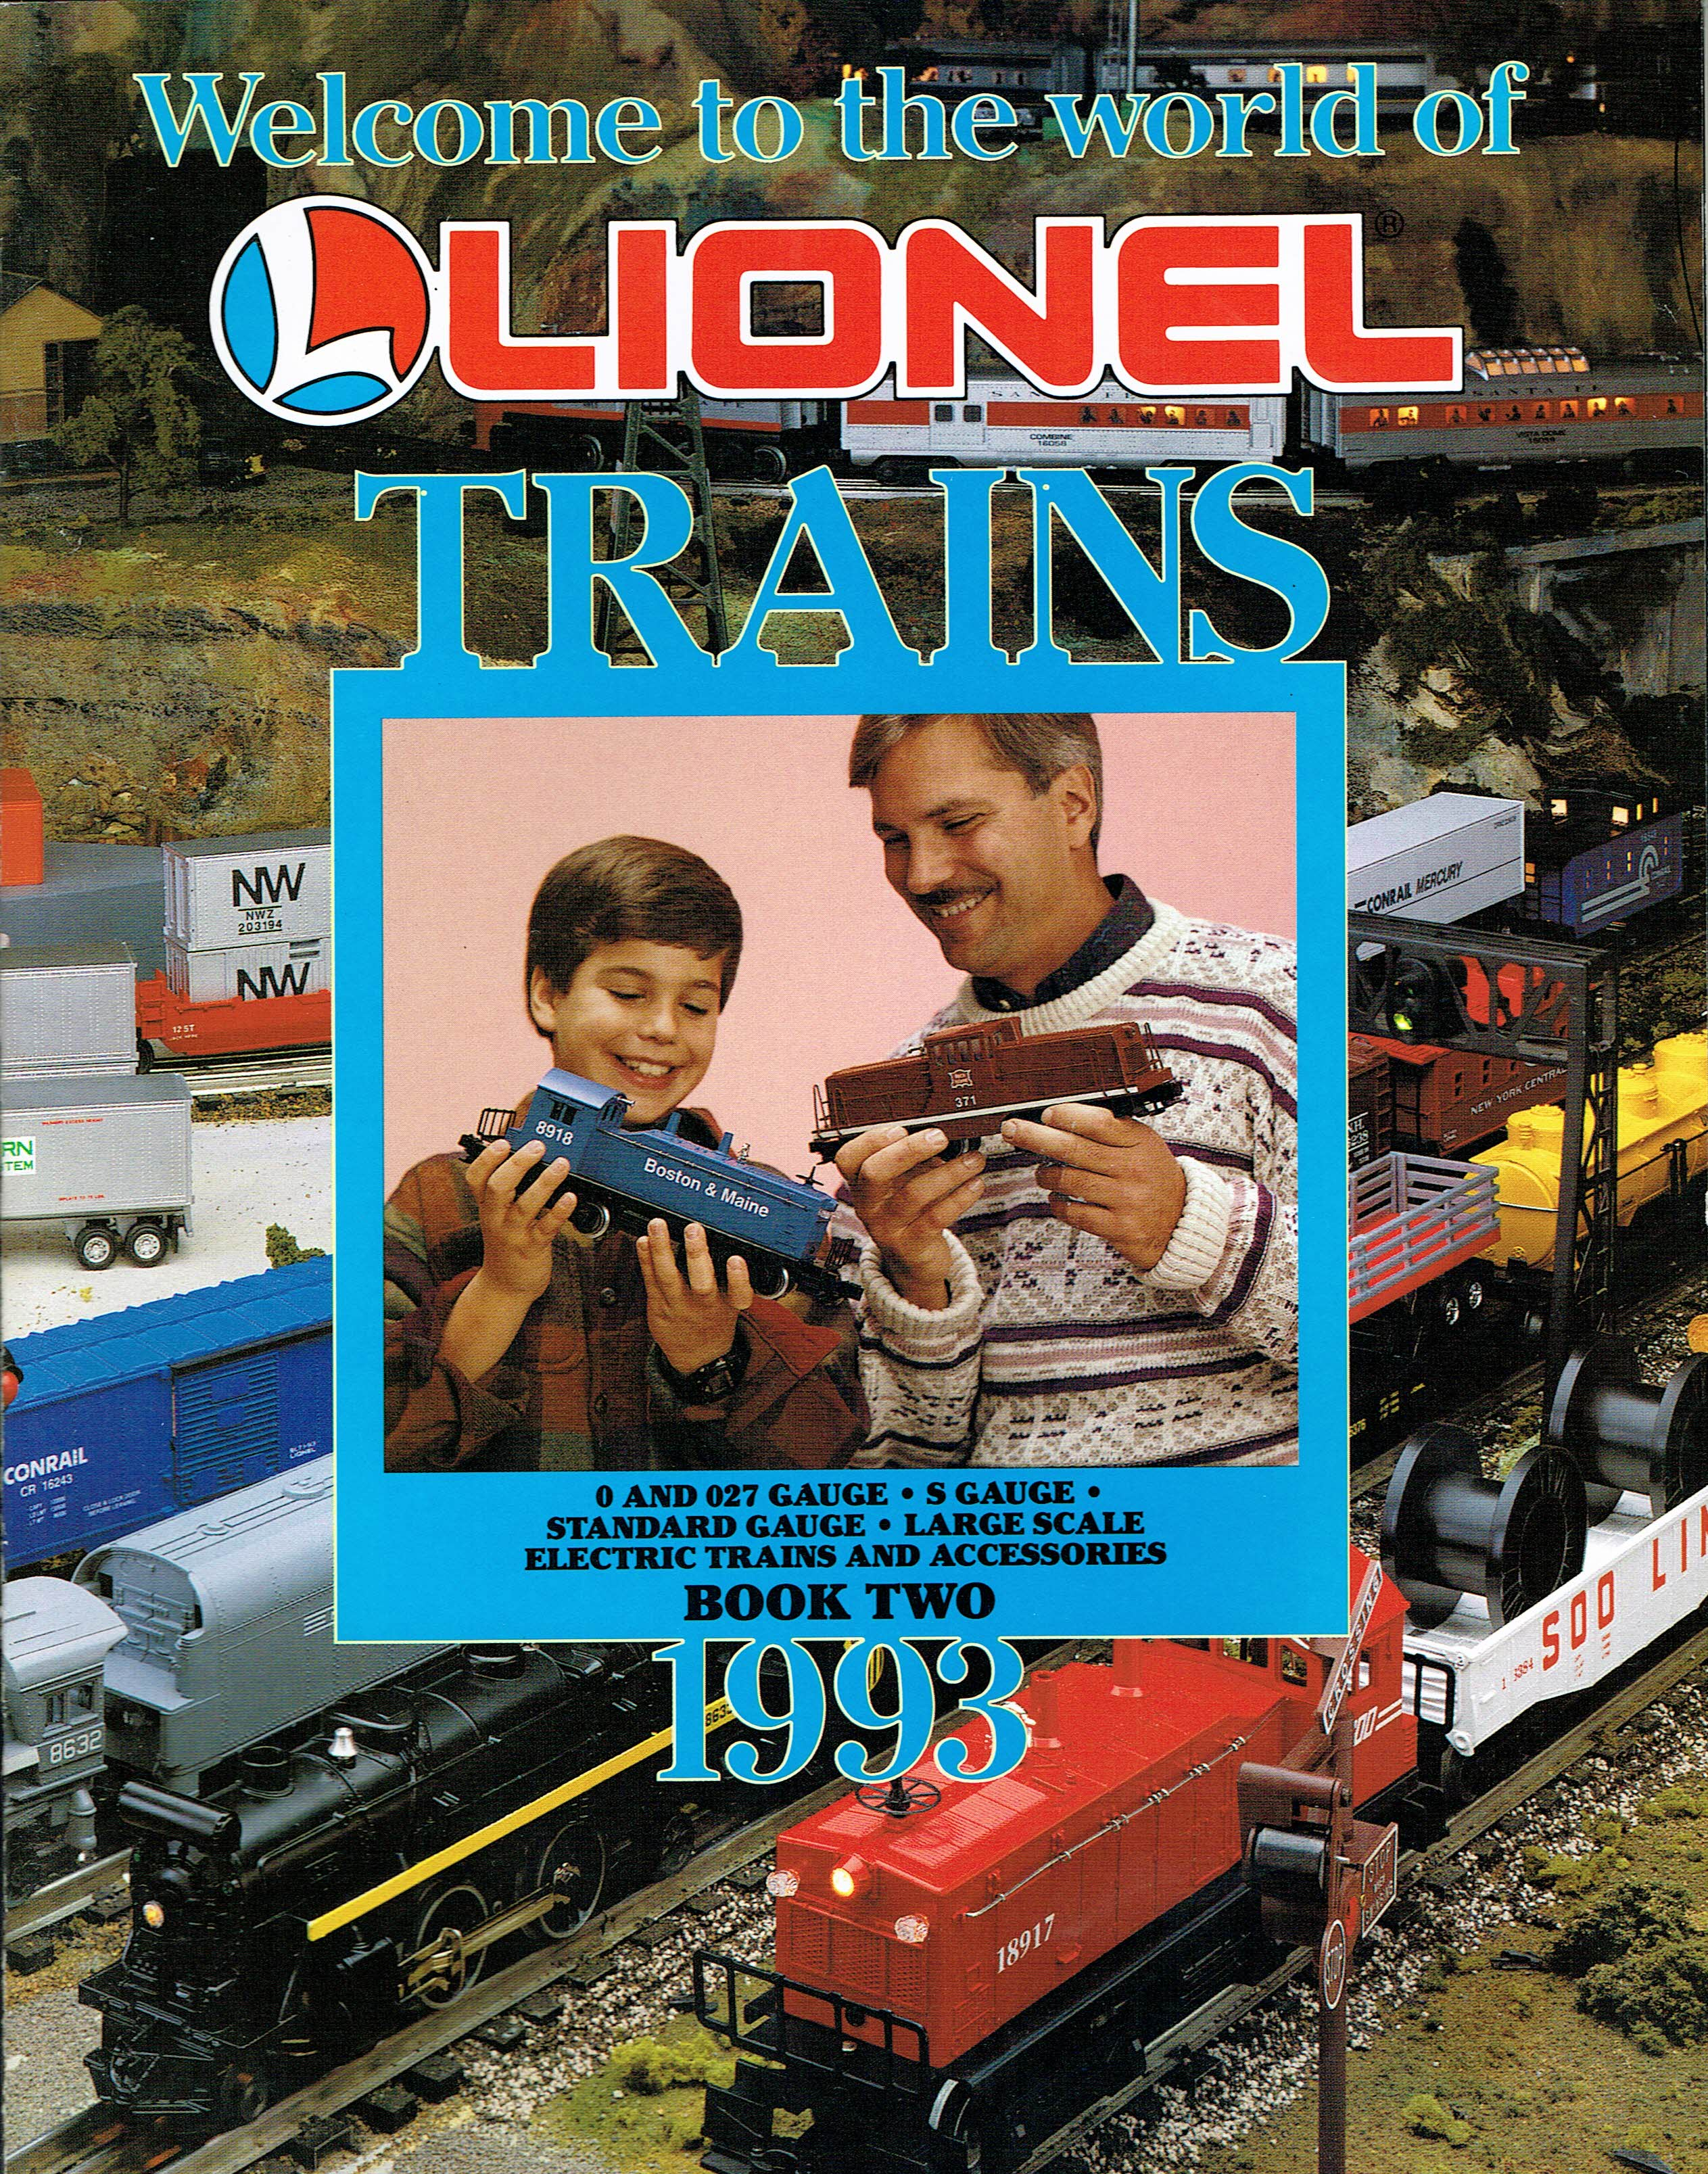 Lionel Trains Book Two 1993 Catalog image